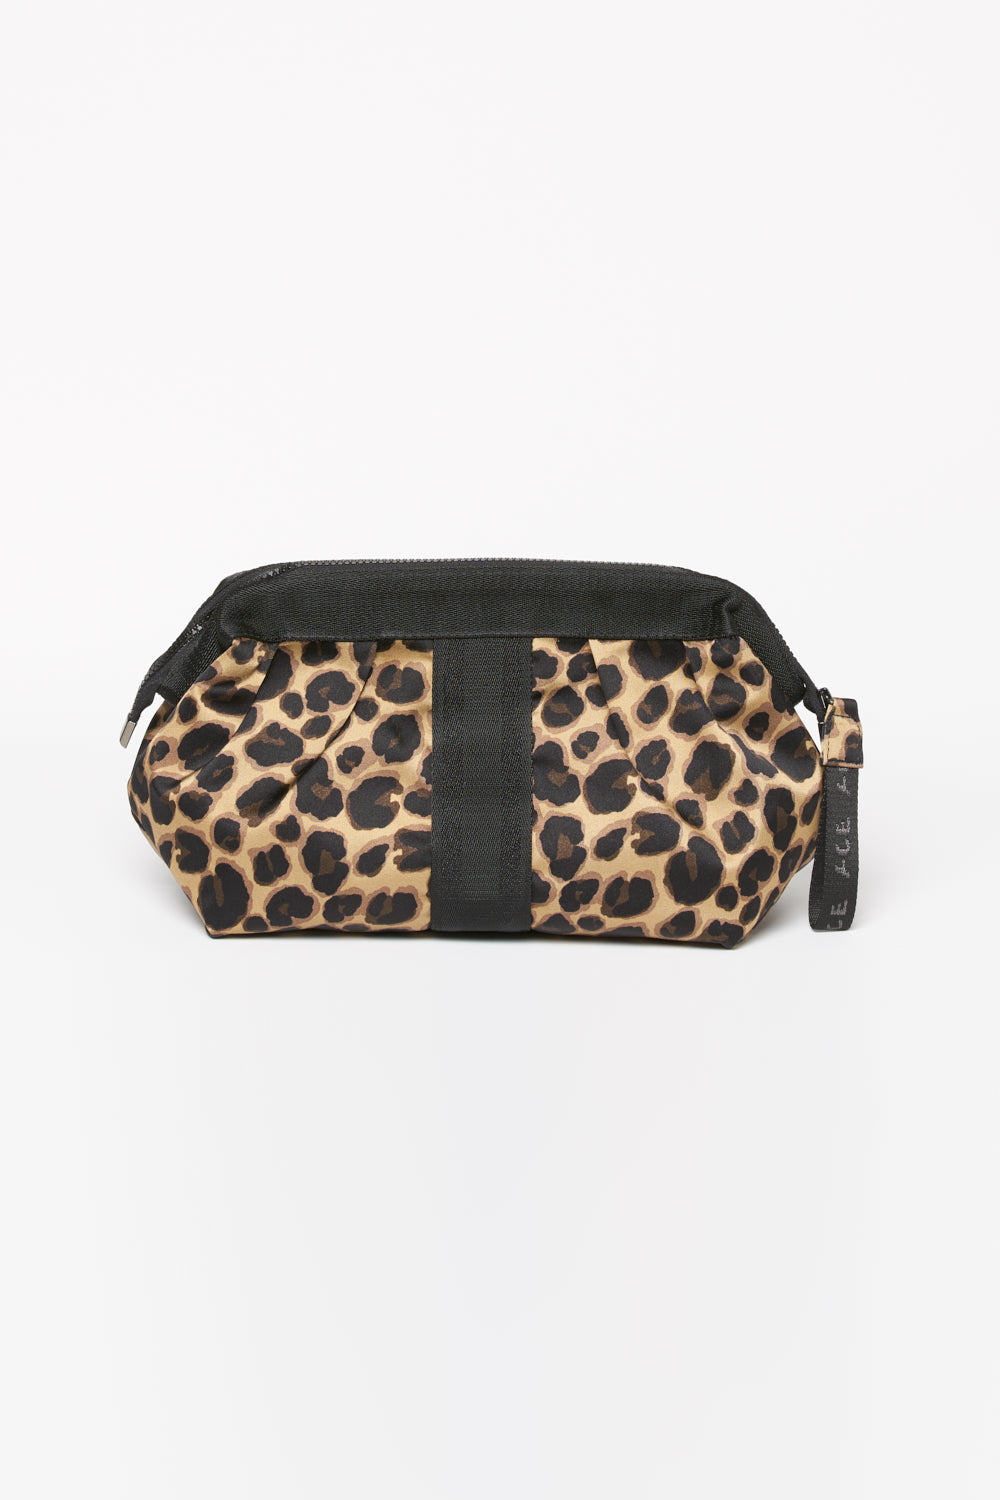 ACE COsmetic Bag Leopard front